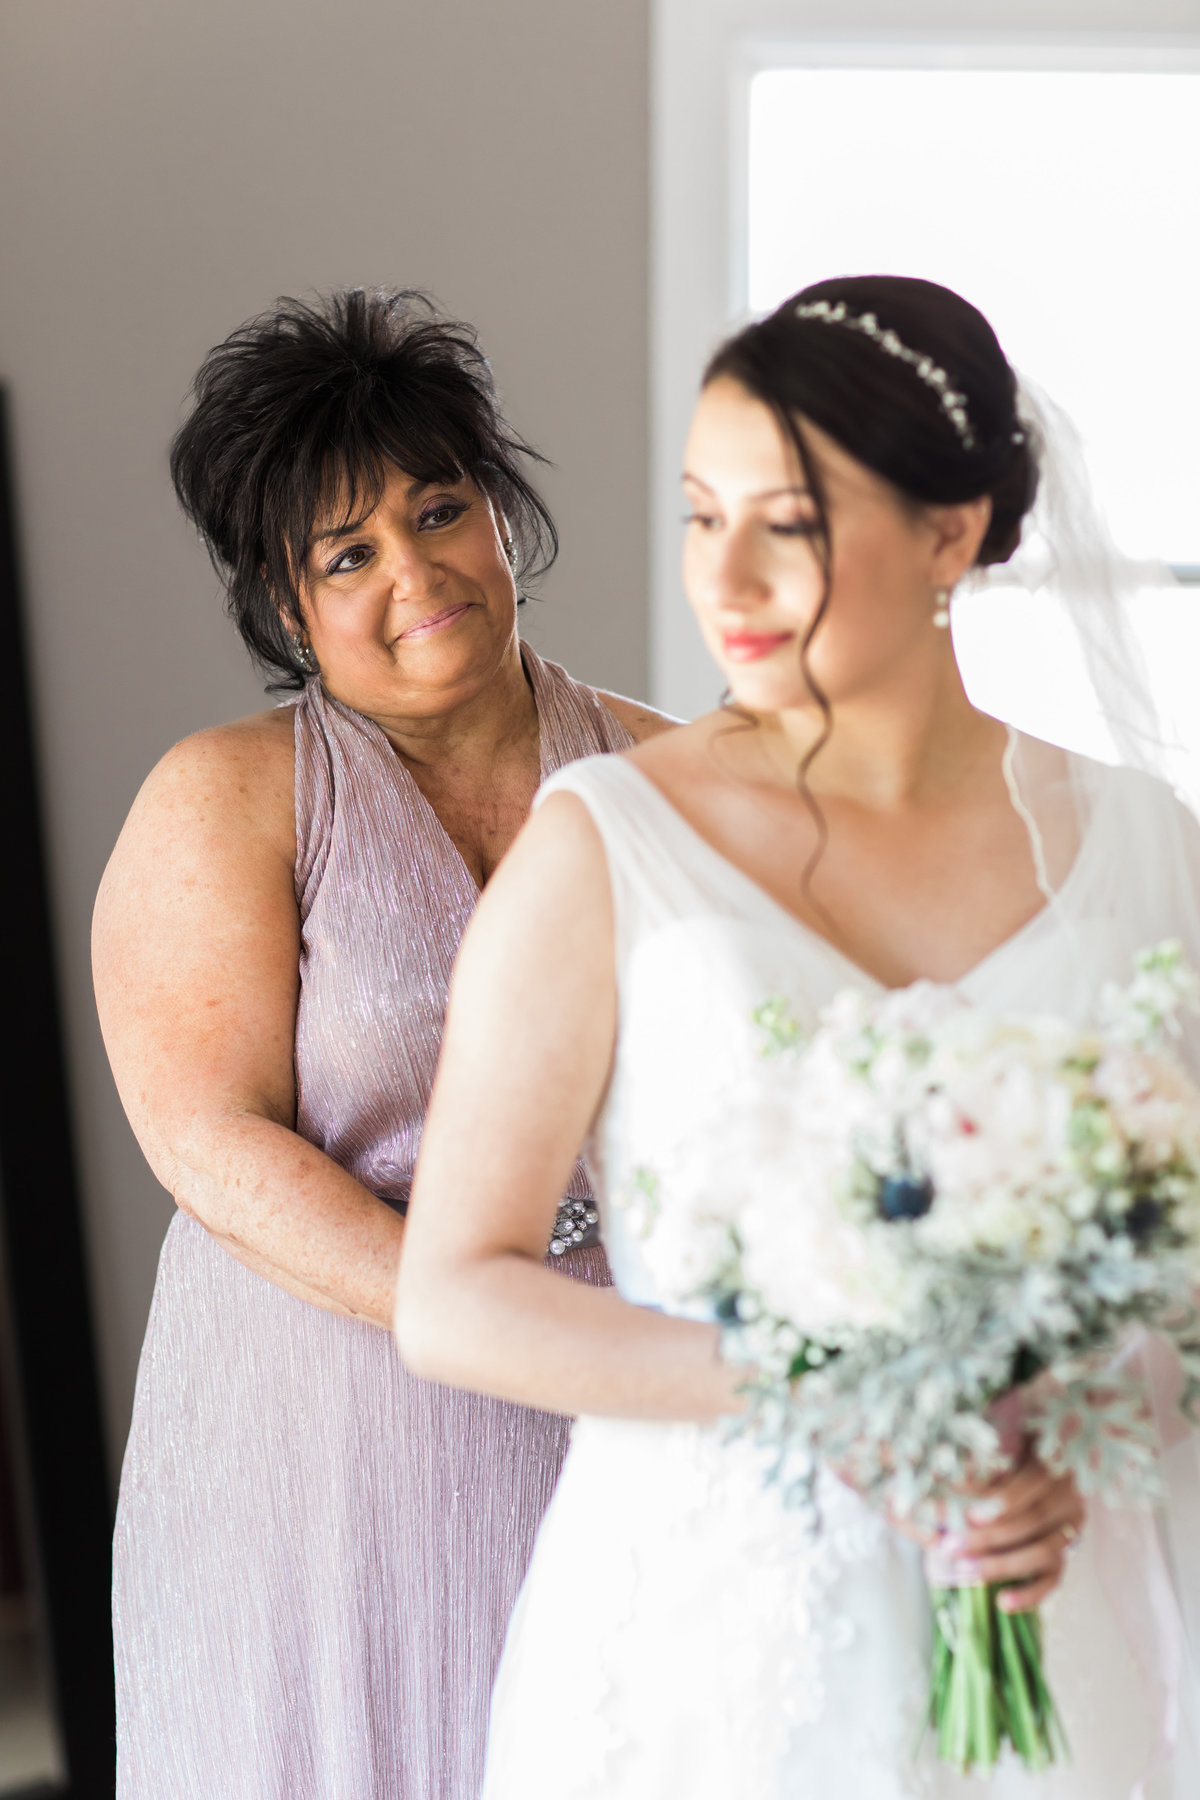 Danielle-Defayette-Photography-Daras-Garden-Knoxville-Wedding-101